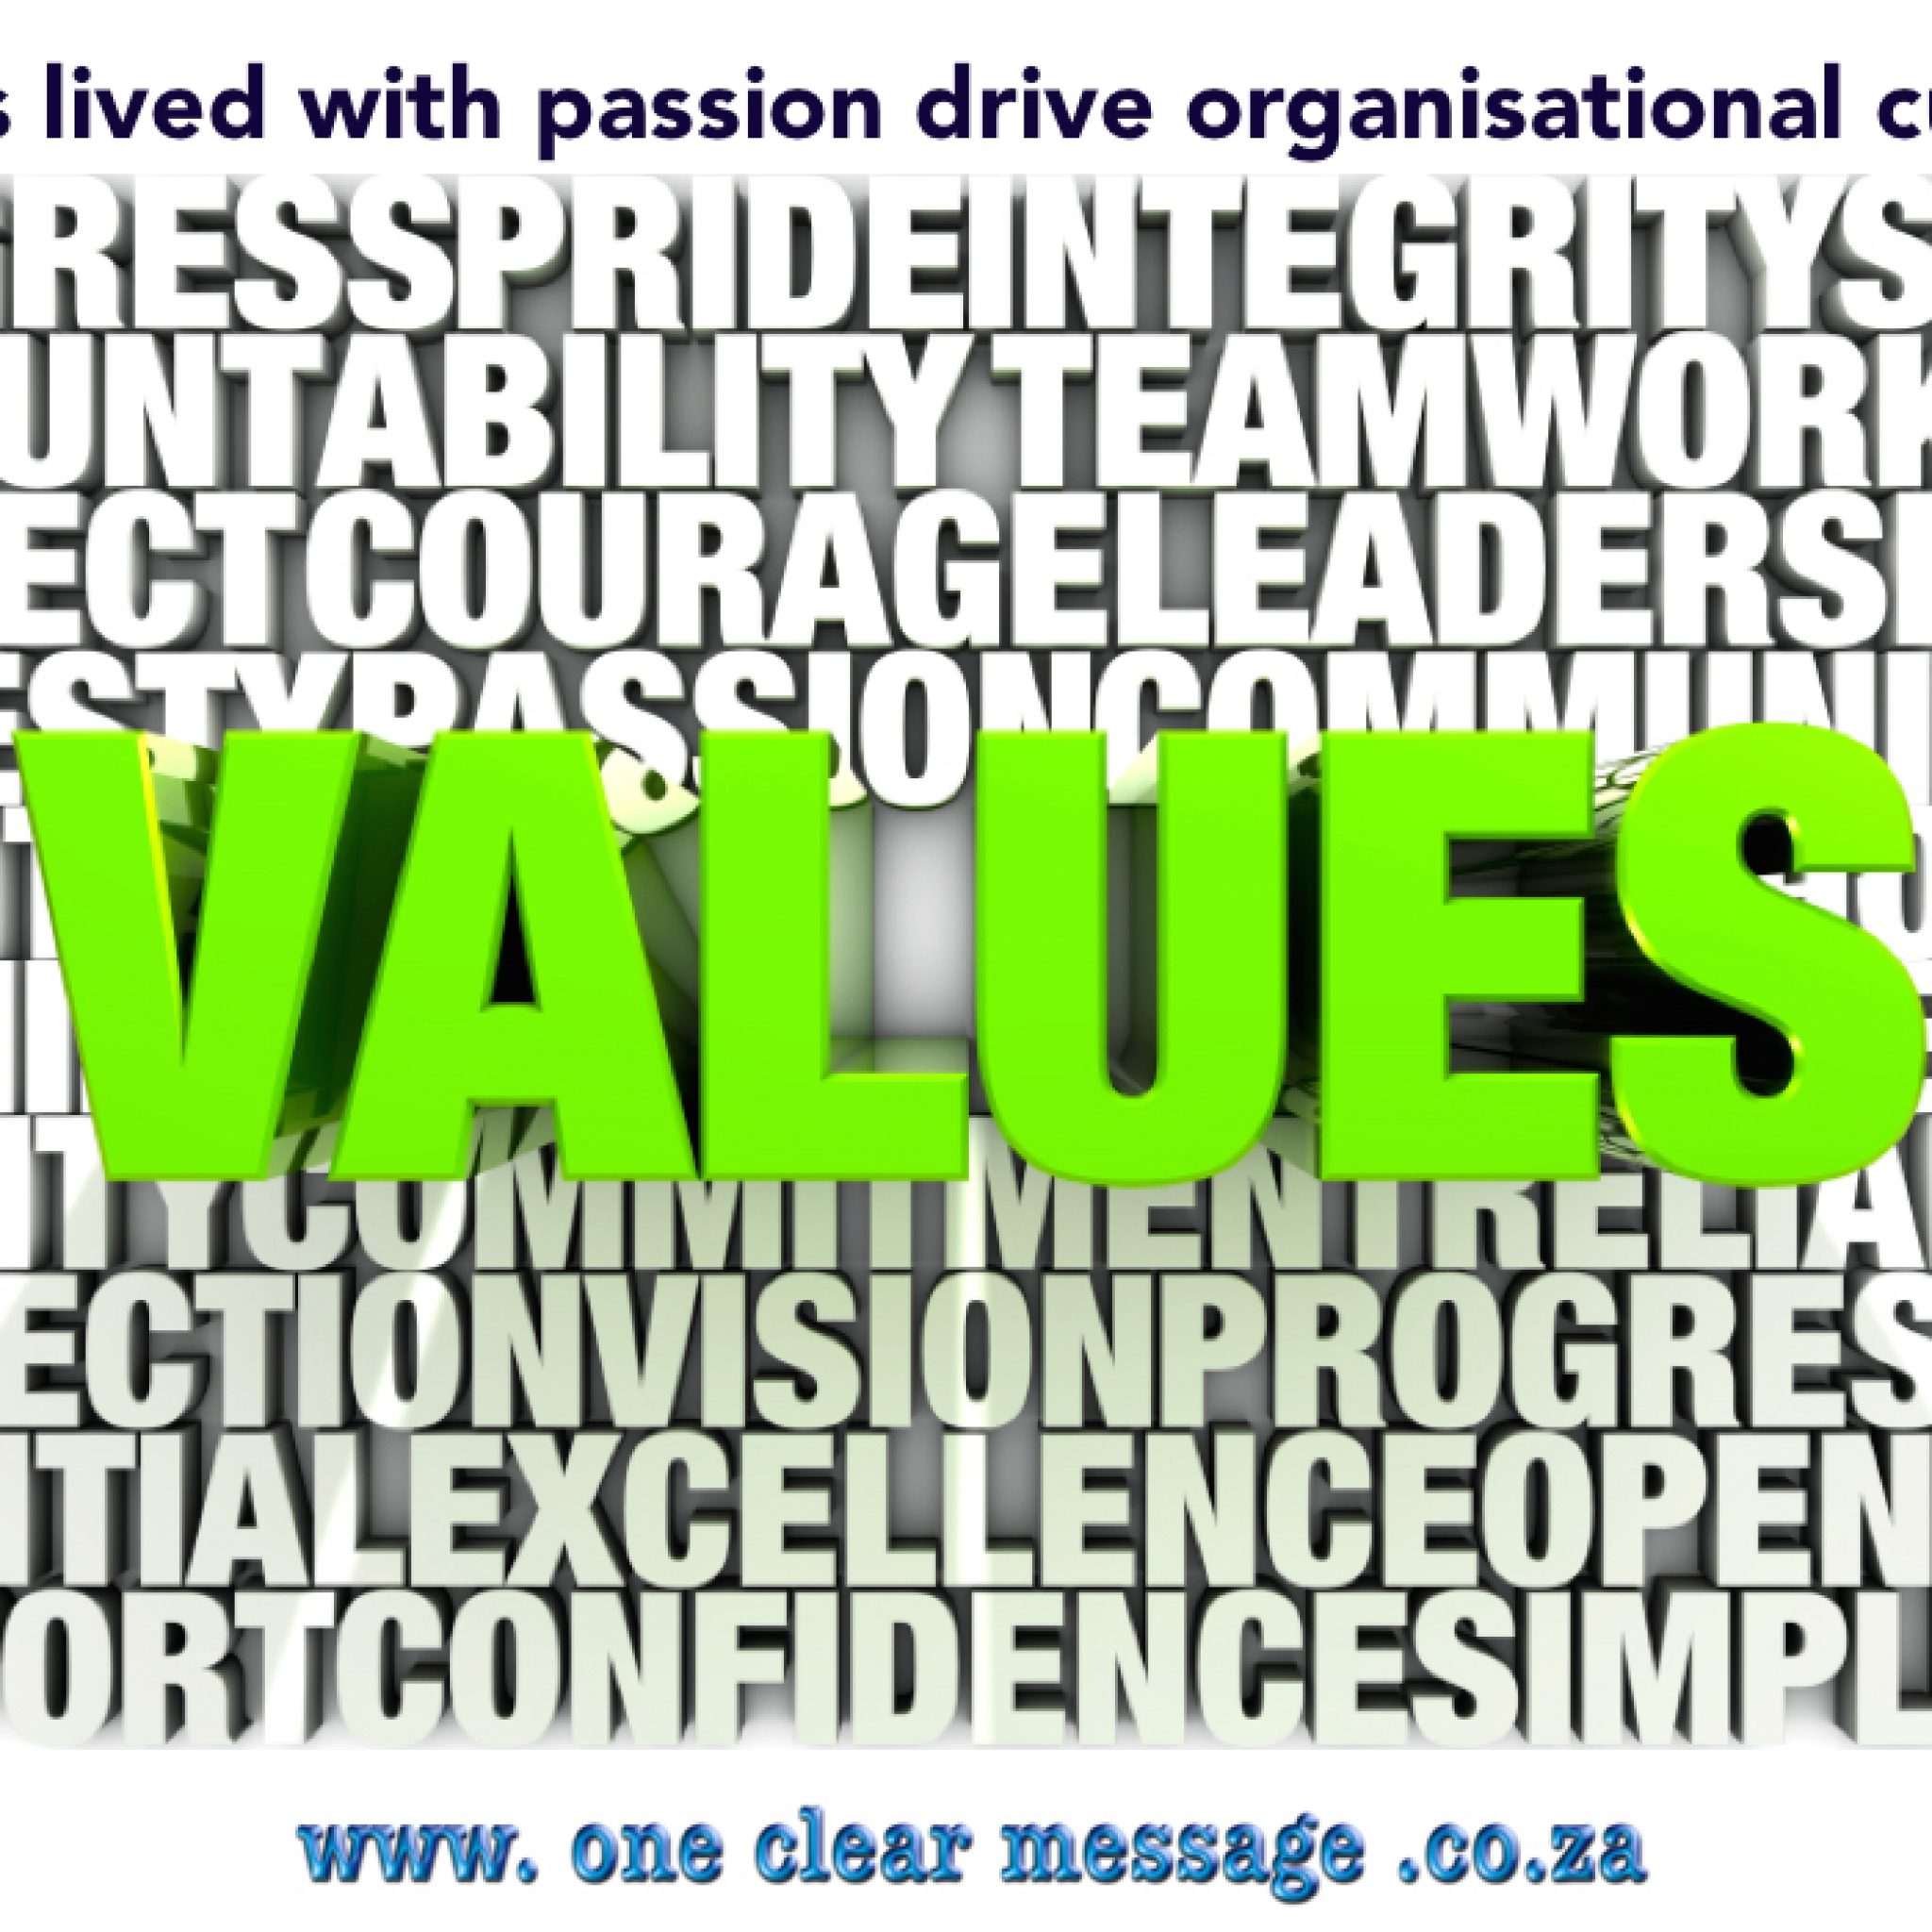 Values lived with passion drive organisational culture